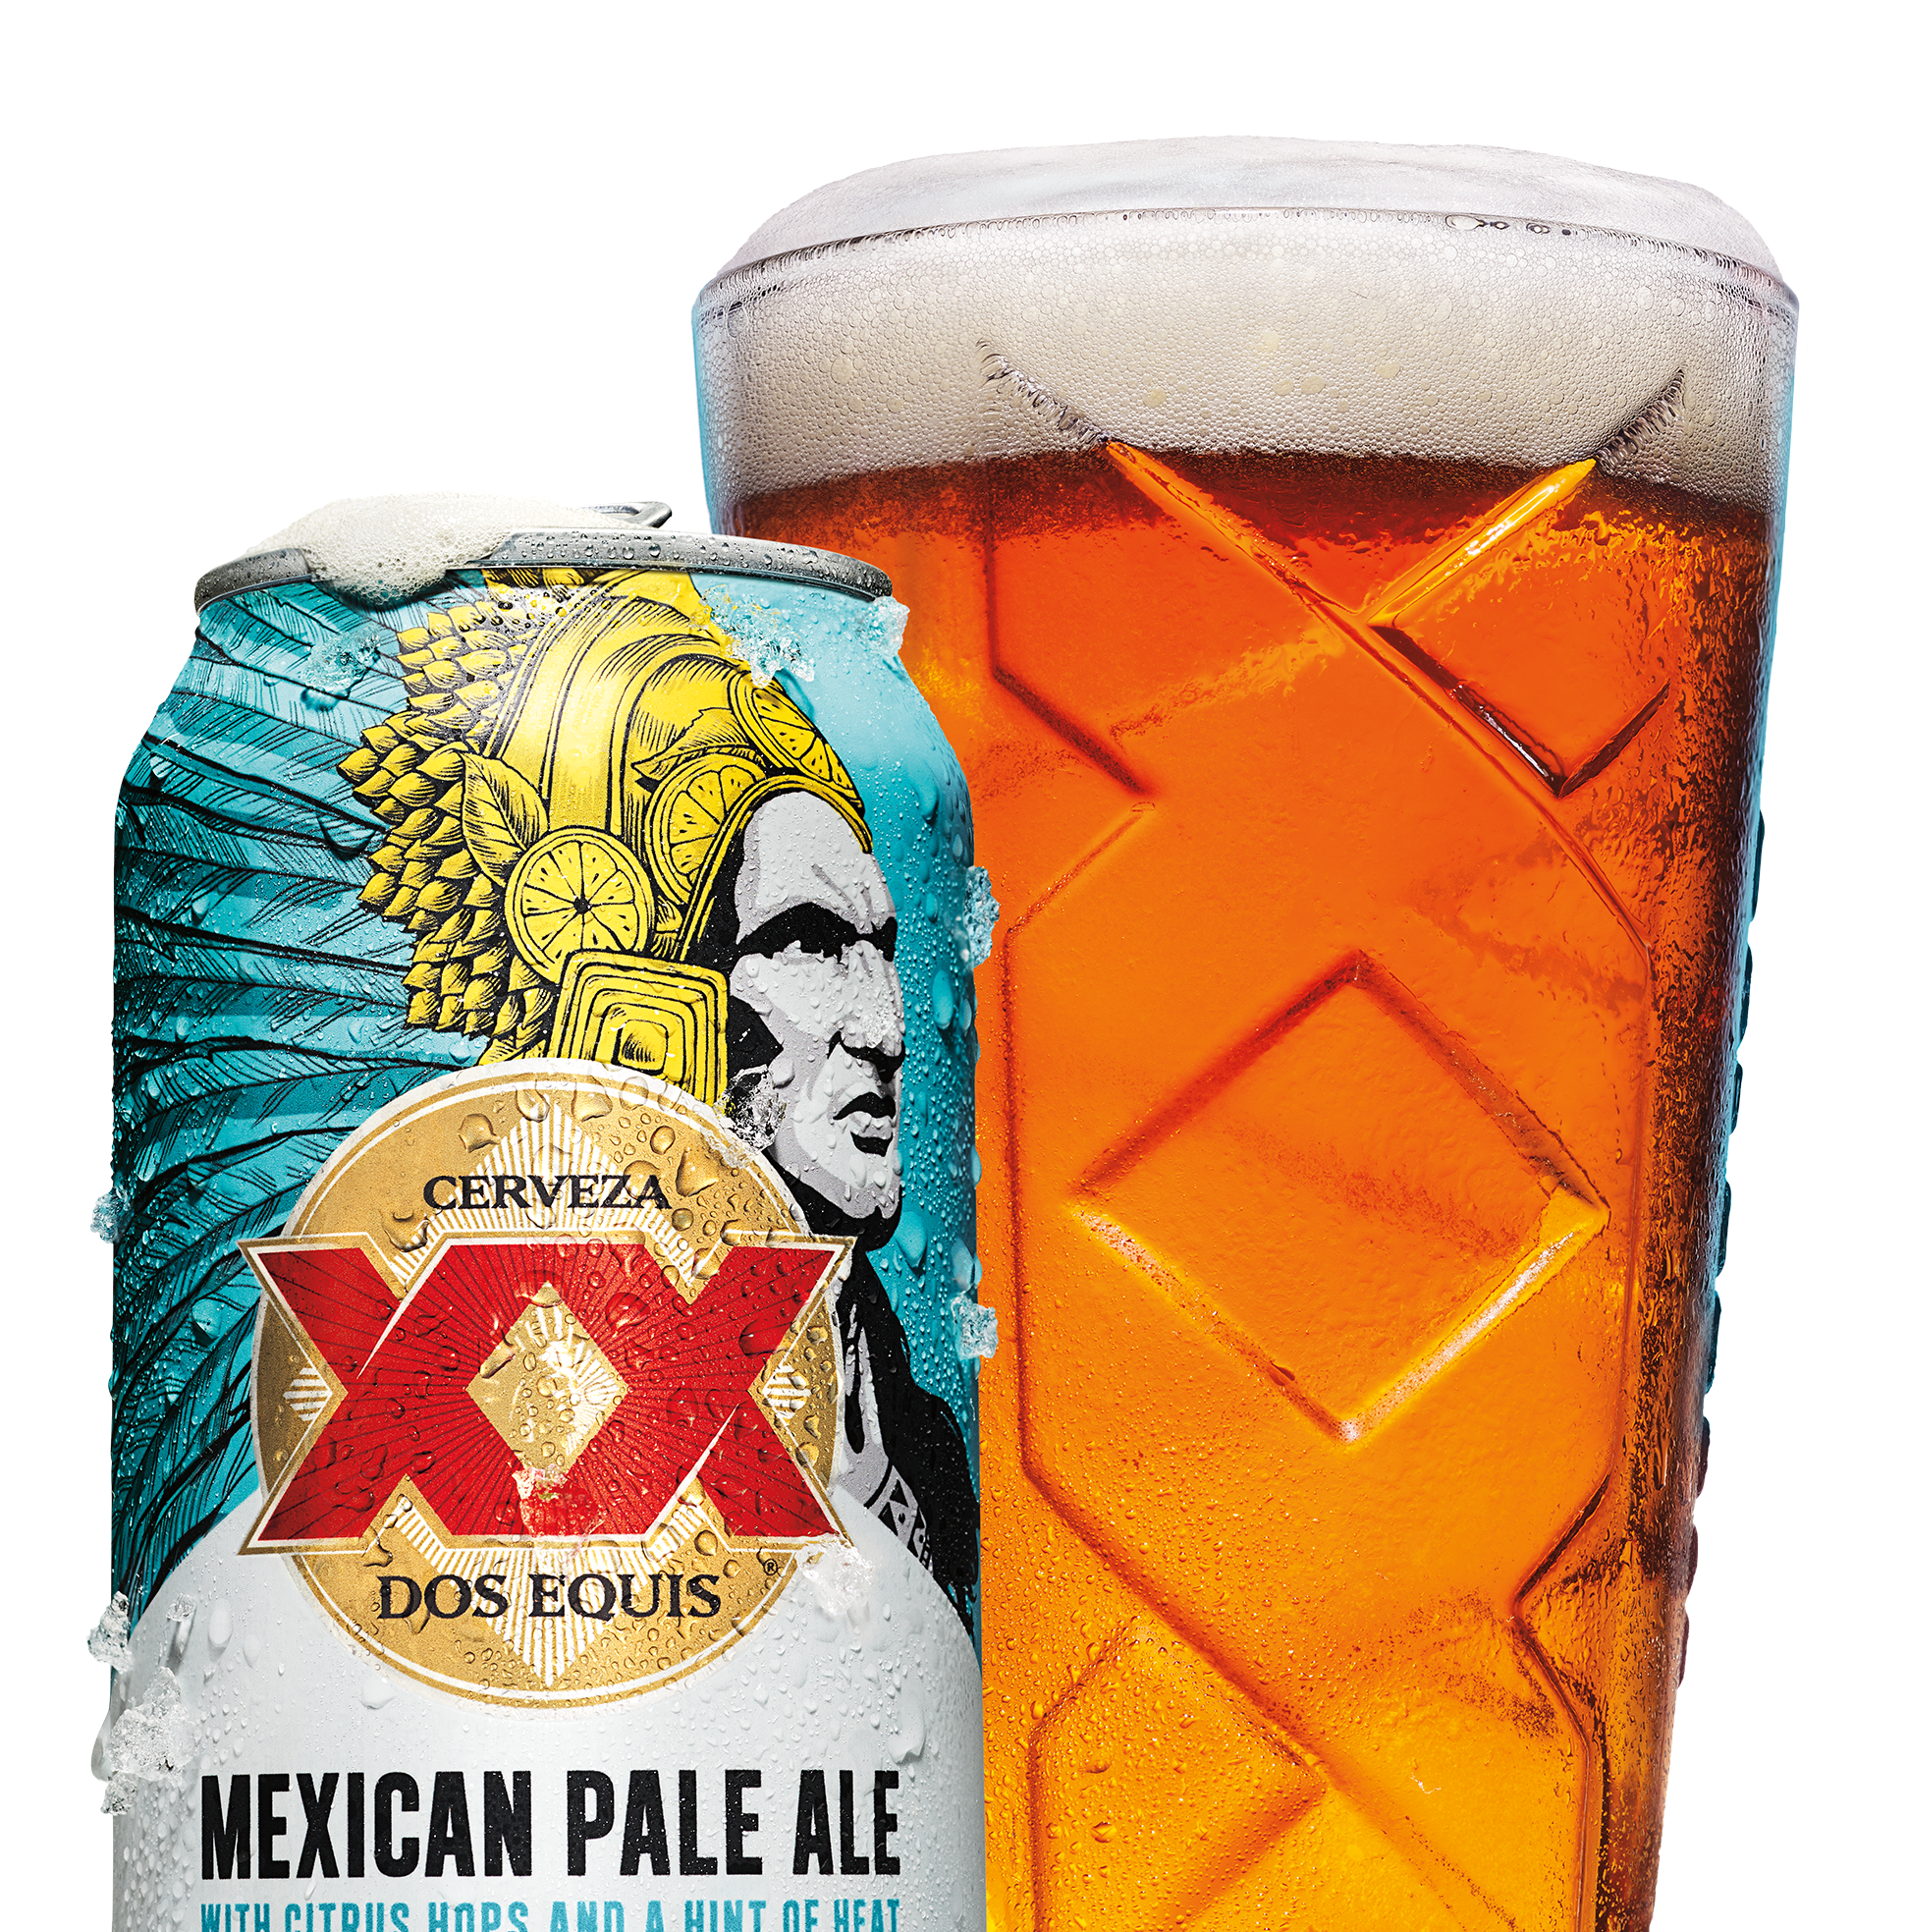 Dos Equis unveils new beer, Mexican Pale Ale, in Texas and New Mexico